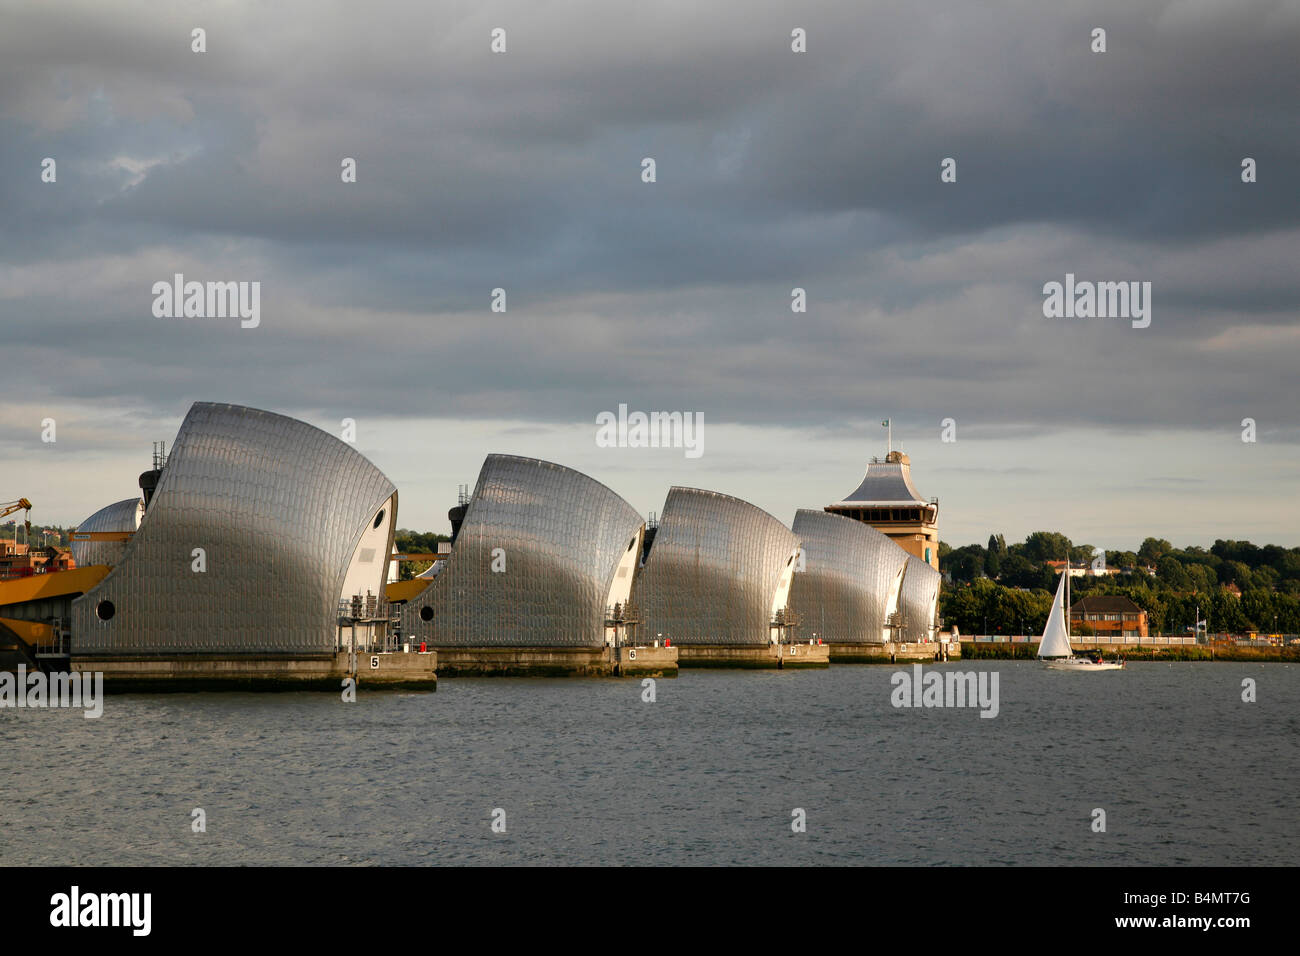 River Thames at the Thames Barrier, Woolwich, London - Stock Image